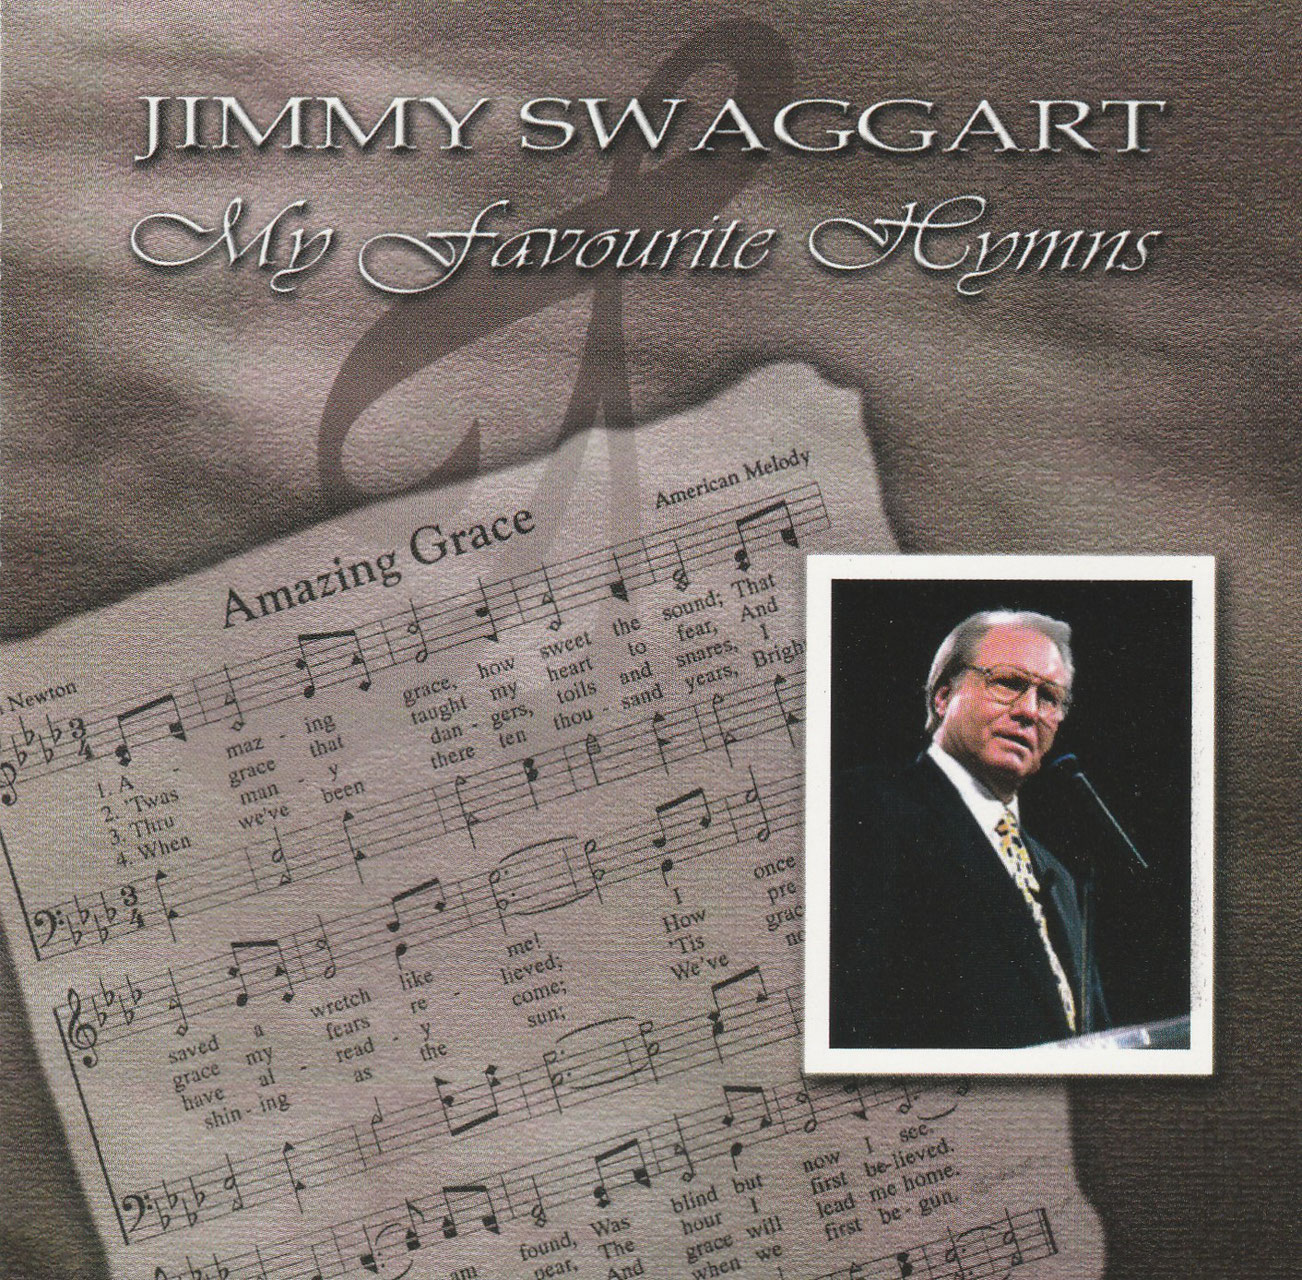 JIMMY SWAGGART (1990-2016)